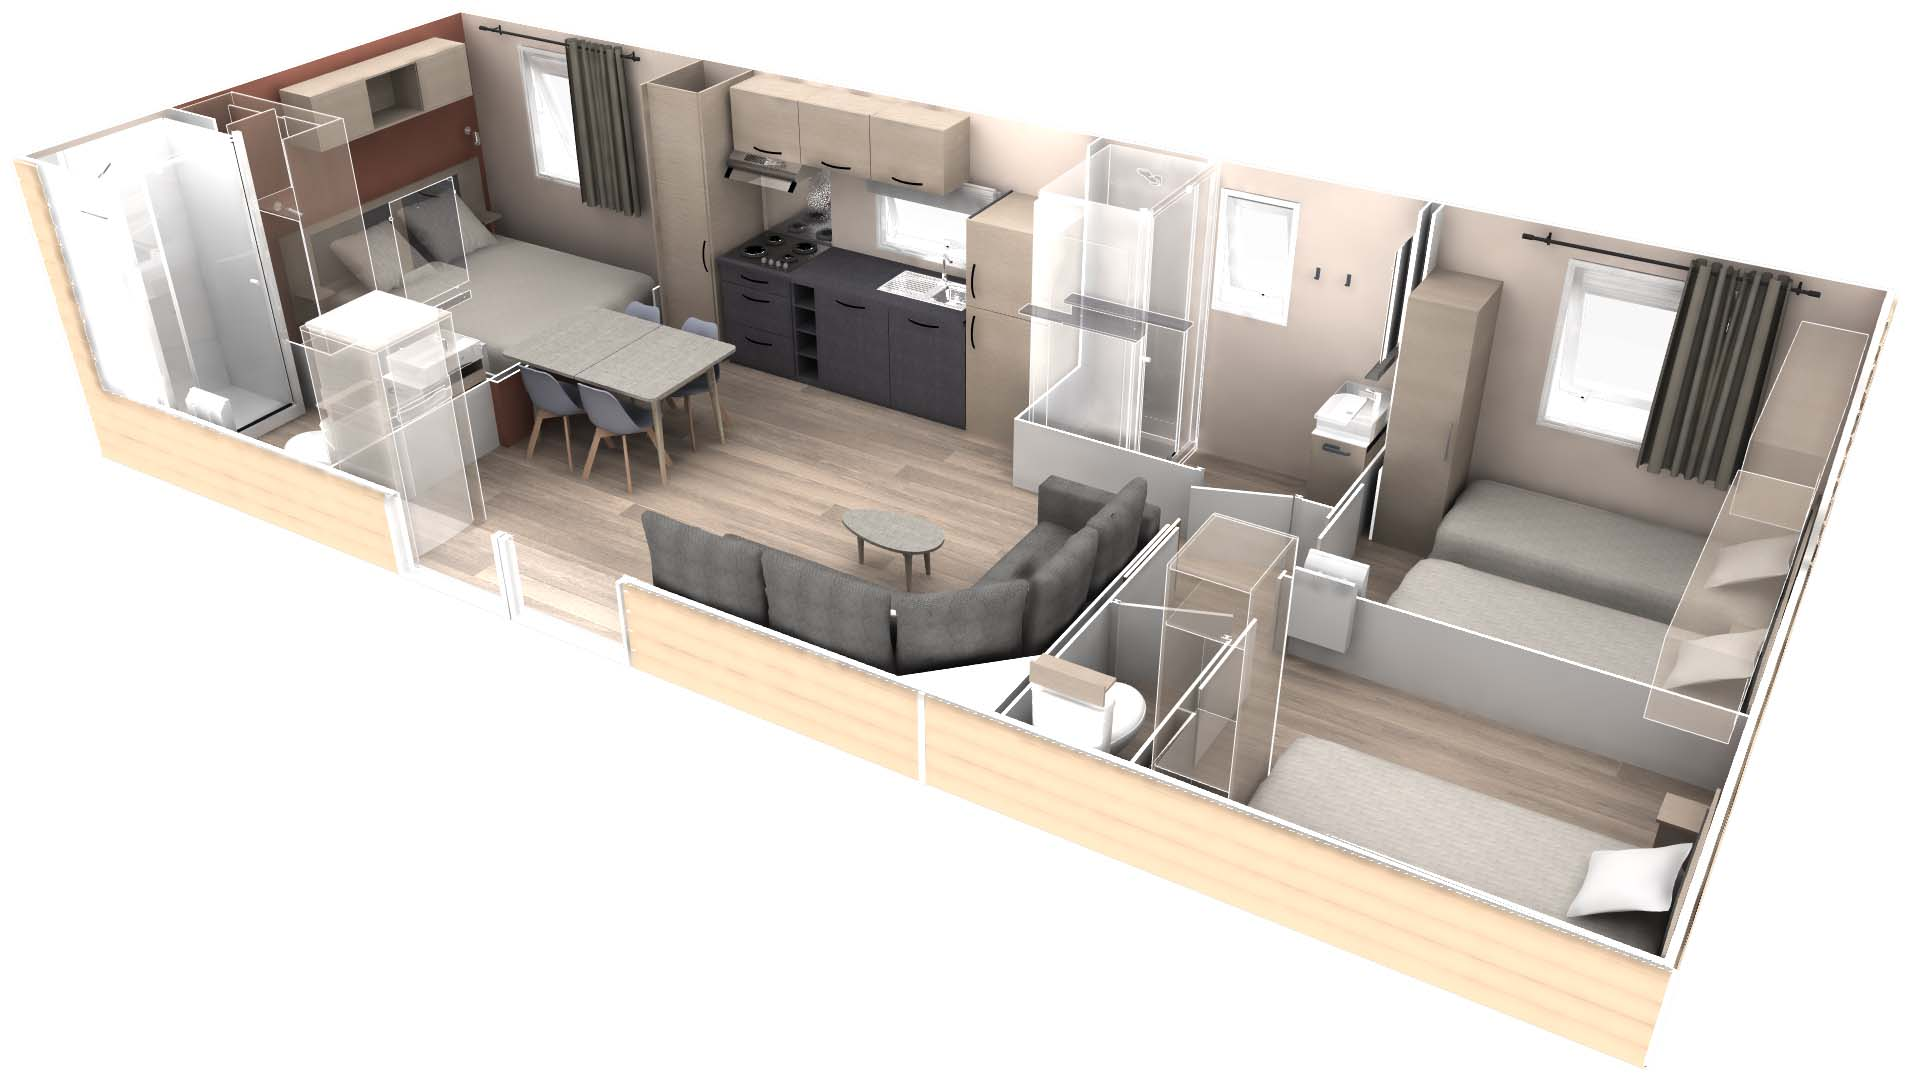 residences trigano-inspiration-3chambres-2sdb-plan-3D